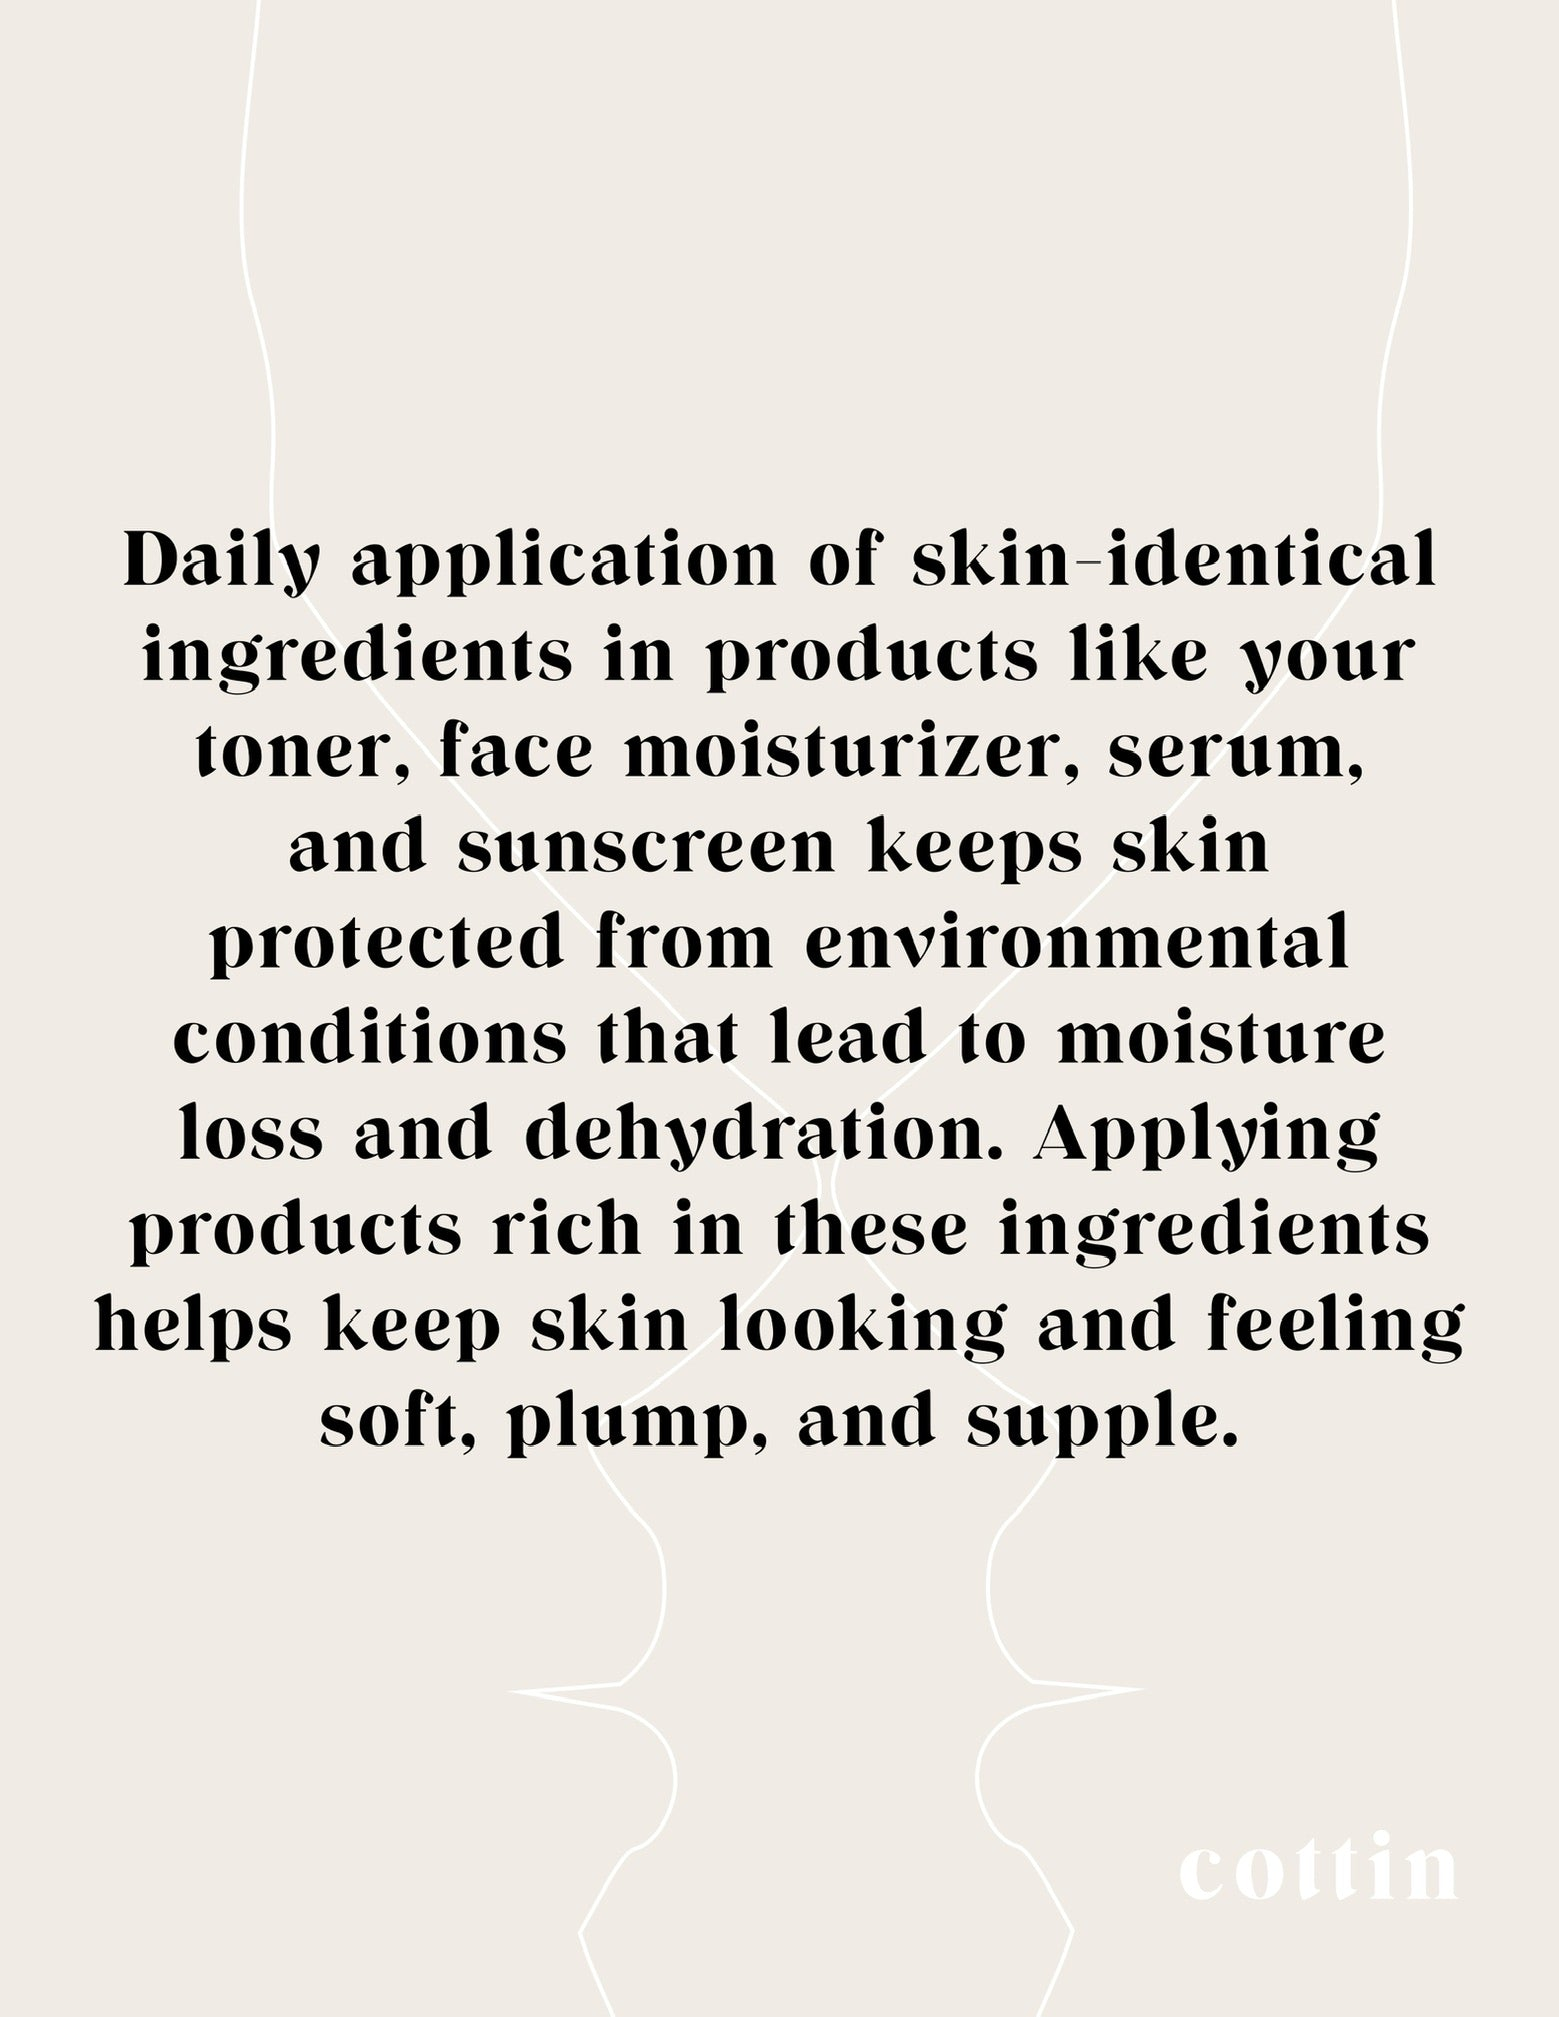 Daily application of skin-identical  ingredients in products like your  toner, face moisturizer, serum,  and sunscreen keeps skin  protected from environmental  conditions that lead to moisture  loss and dehydration. Applying  products rich in these ingredients  helps keep skin looking and feeling  soft, plump, and supple.